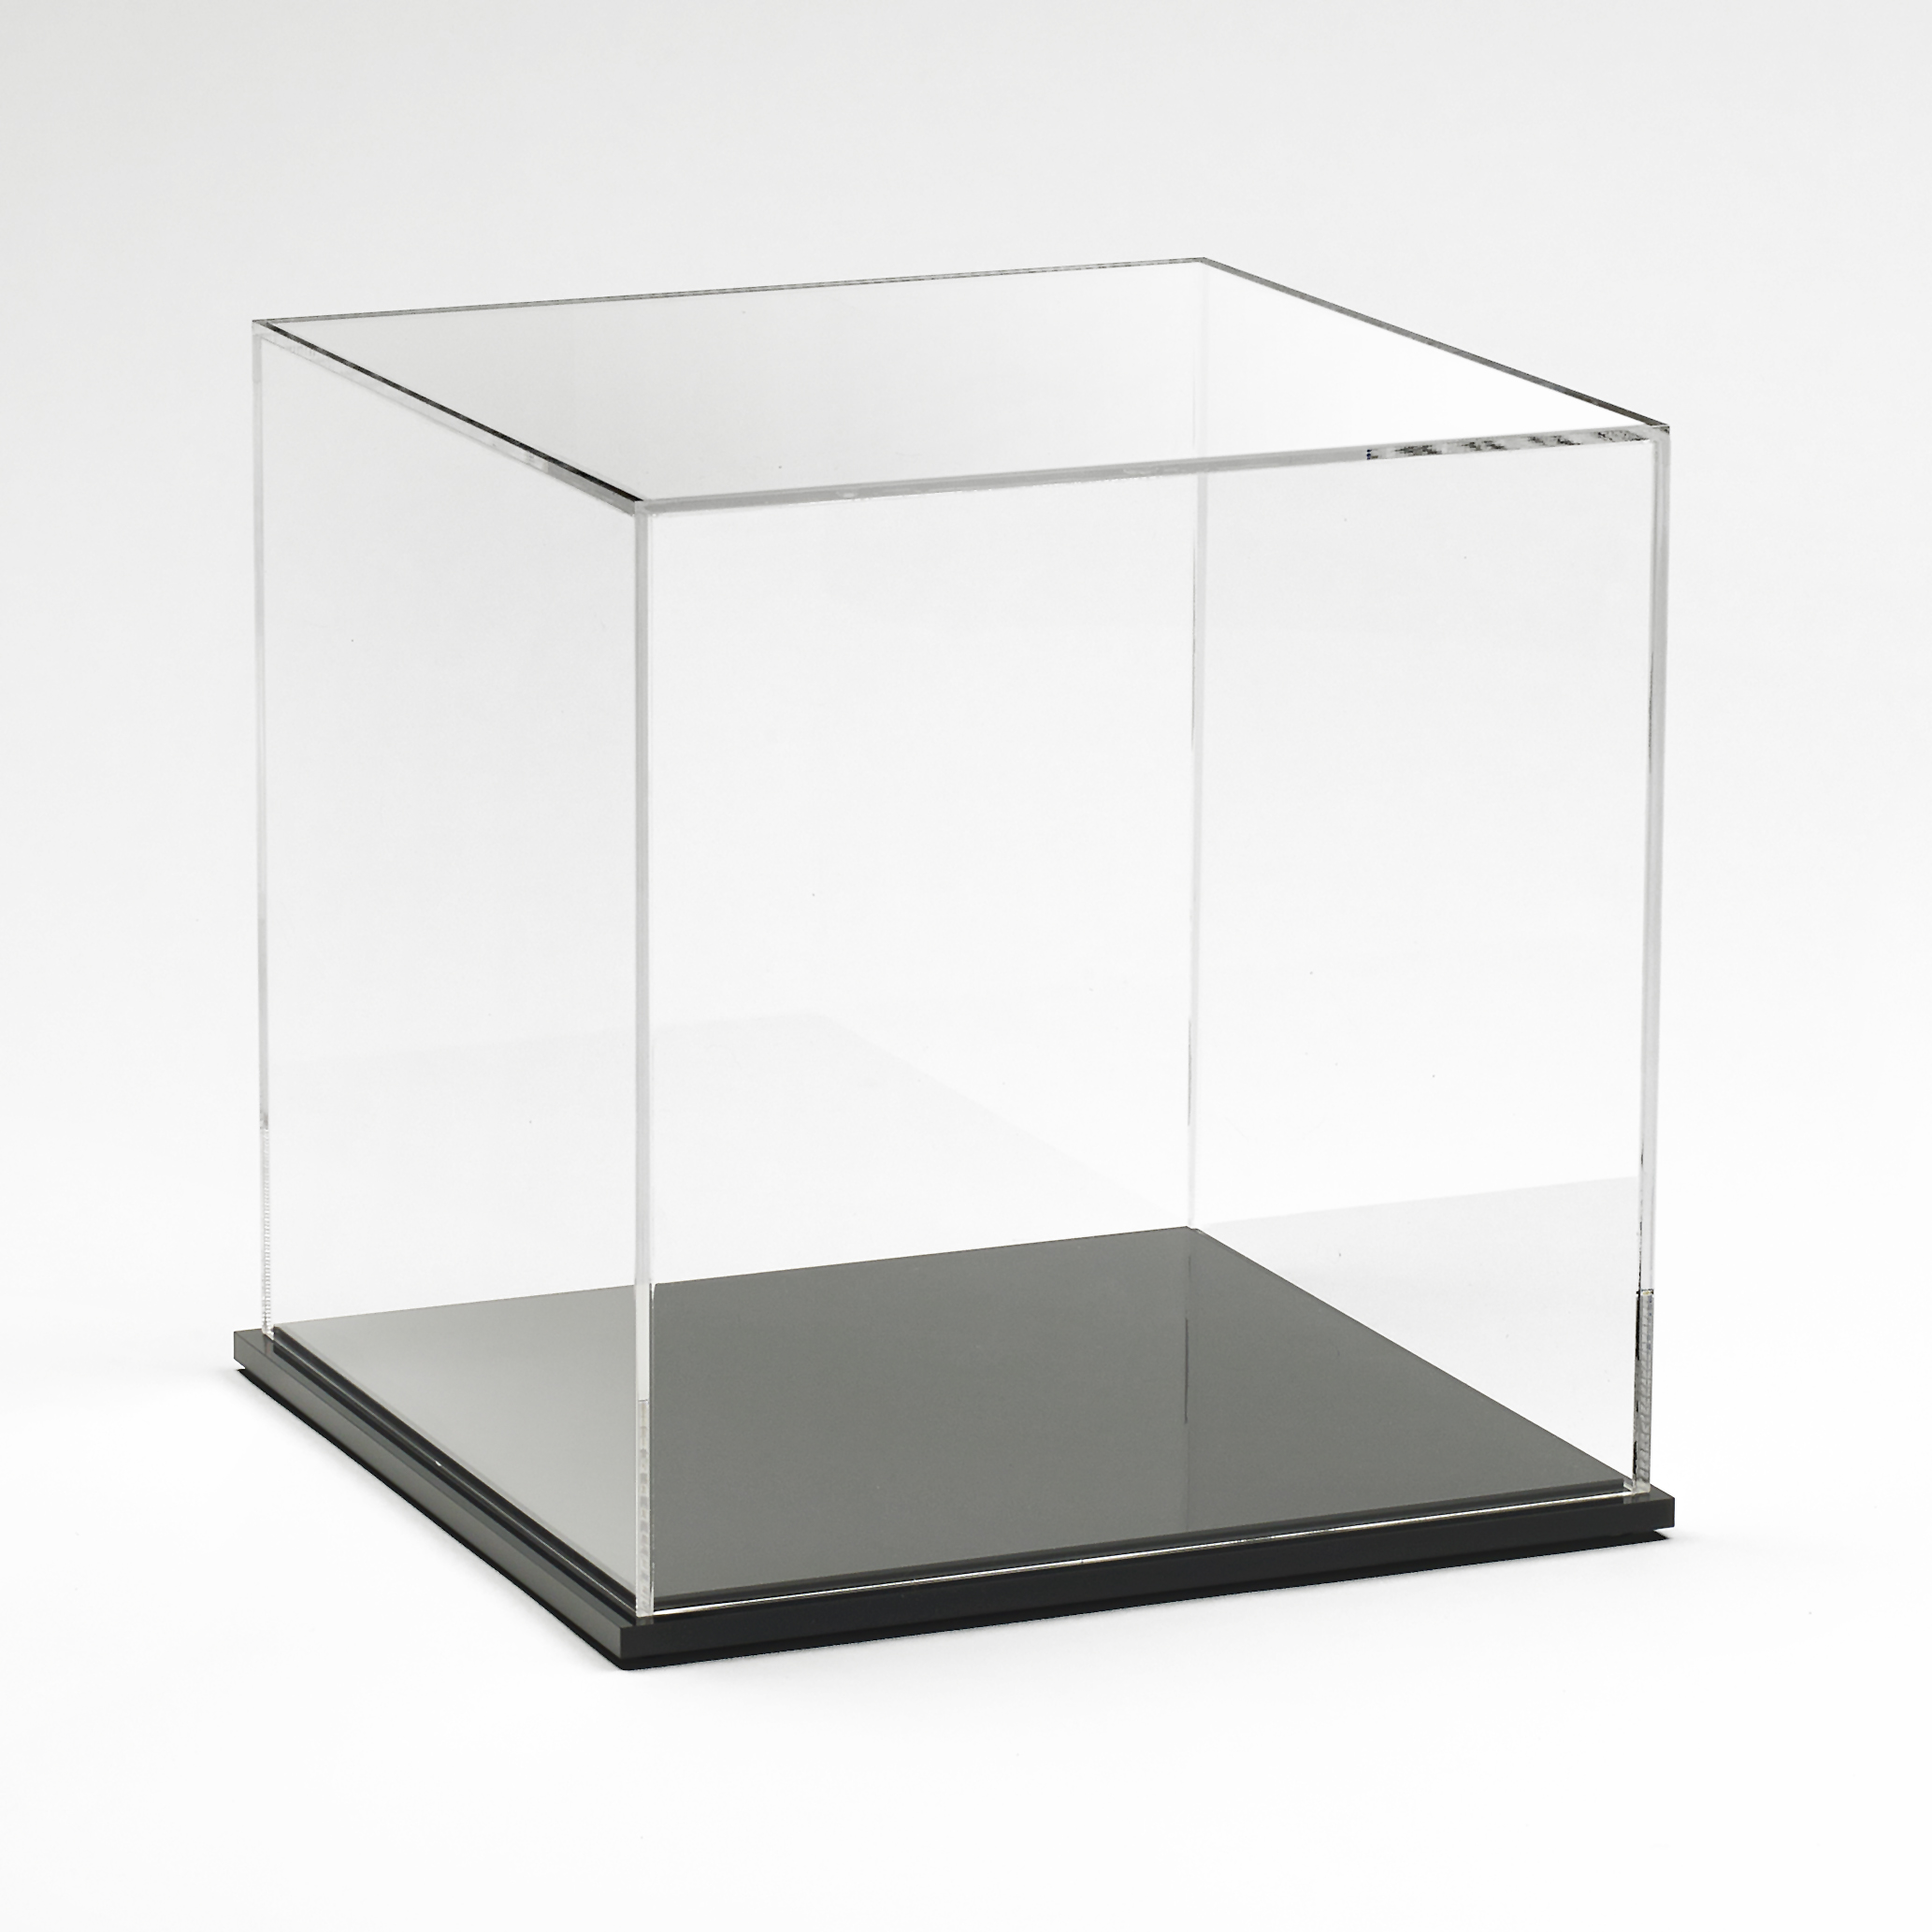 Acrylic Display Box 10 Quot X 10 Quot X 10 Quot With Black Base Buy